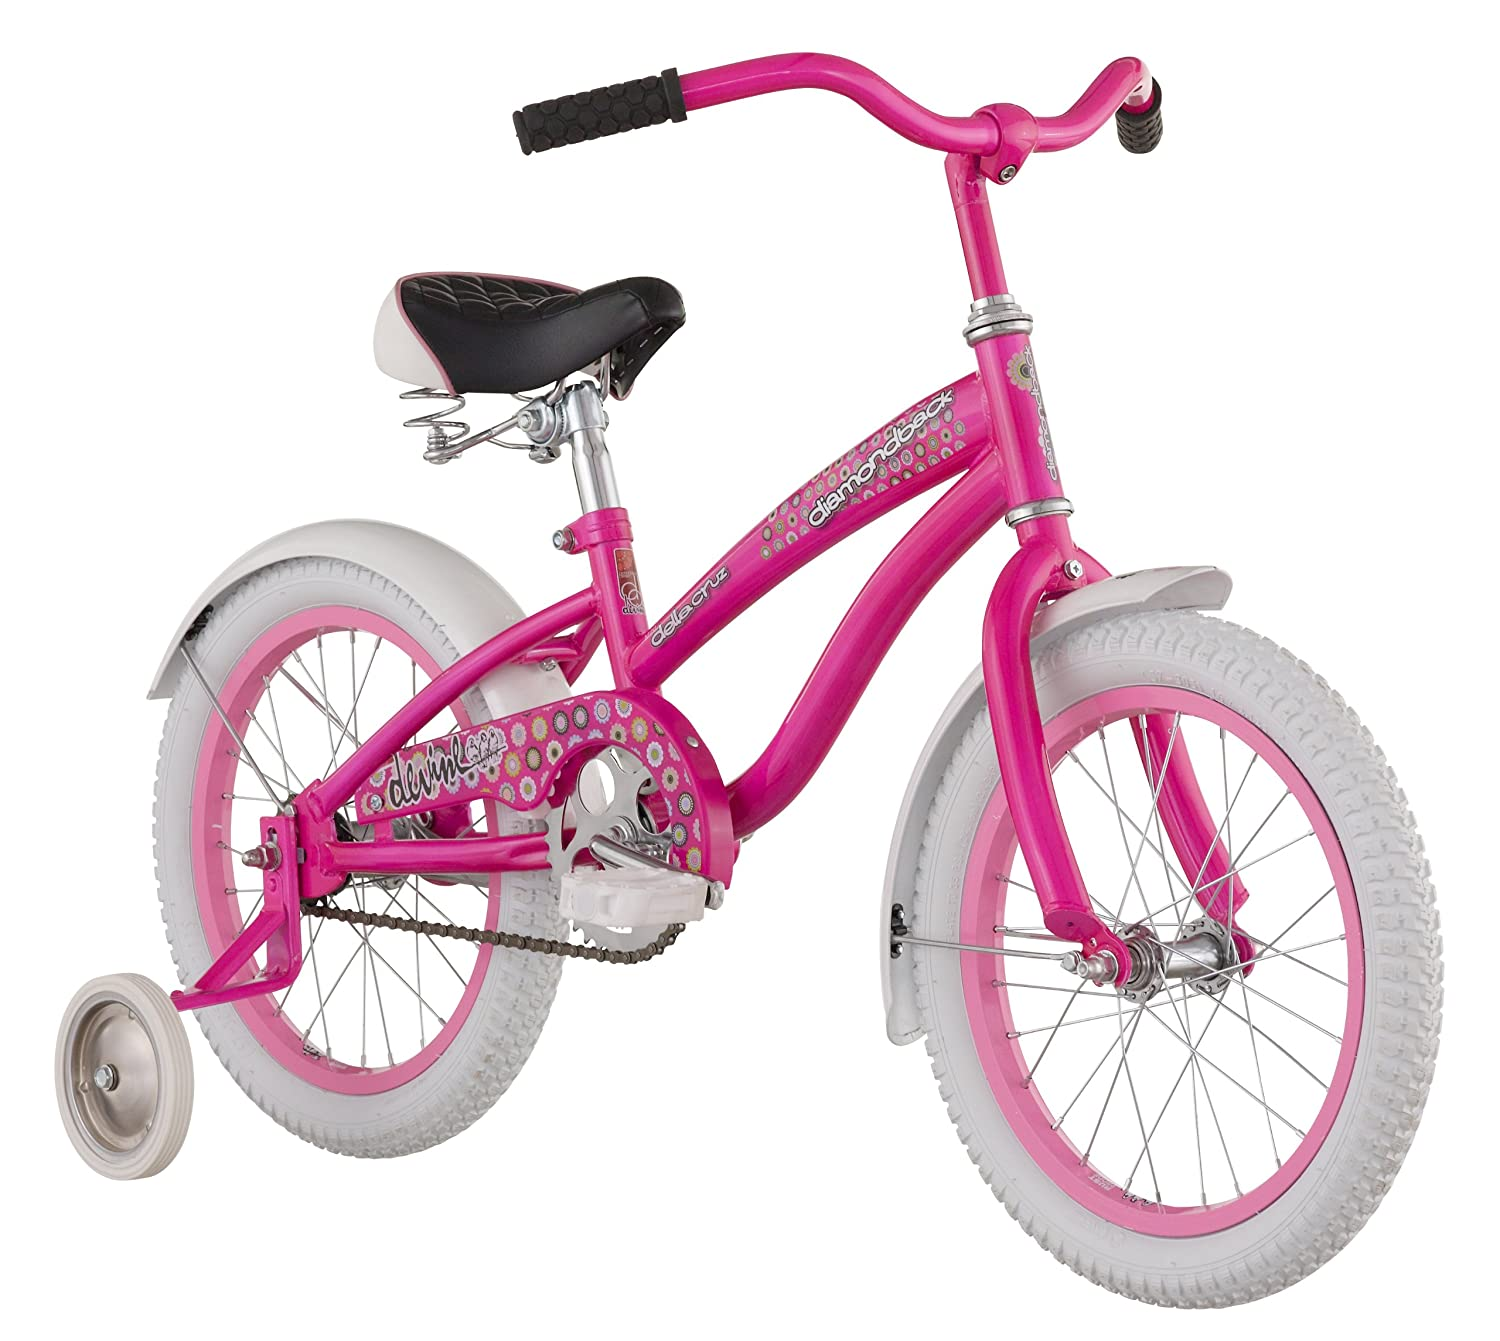 Diamondback Della Cruz Girl's Cruiser Bike